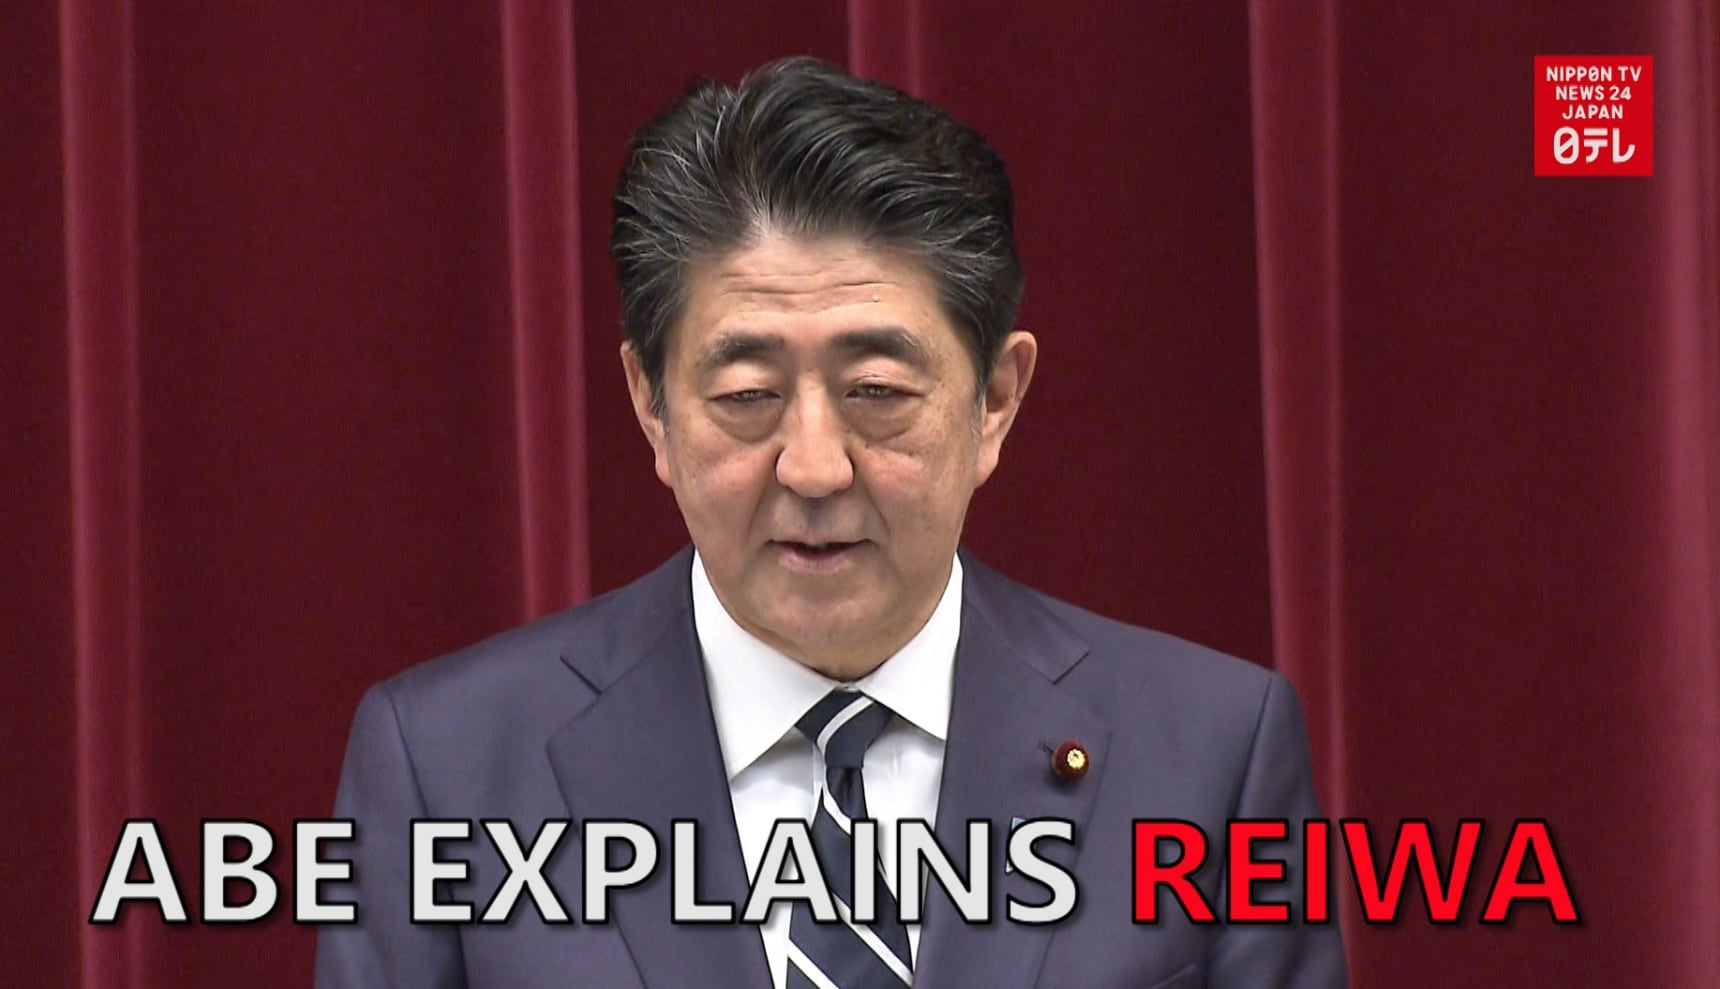 PM Abe Helps Explain the Name of the New Era